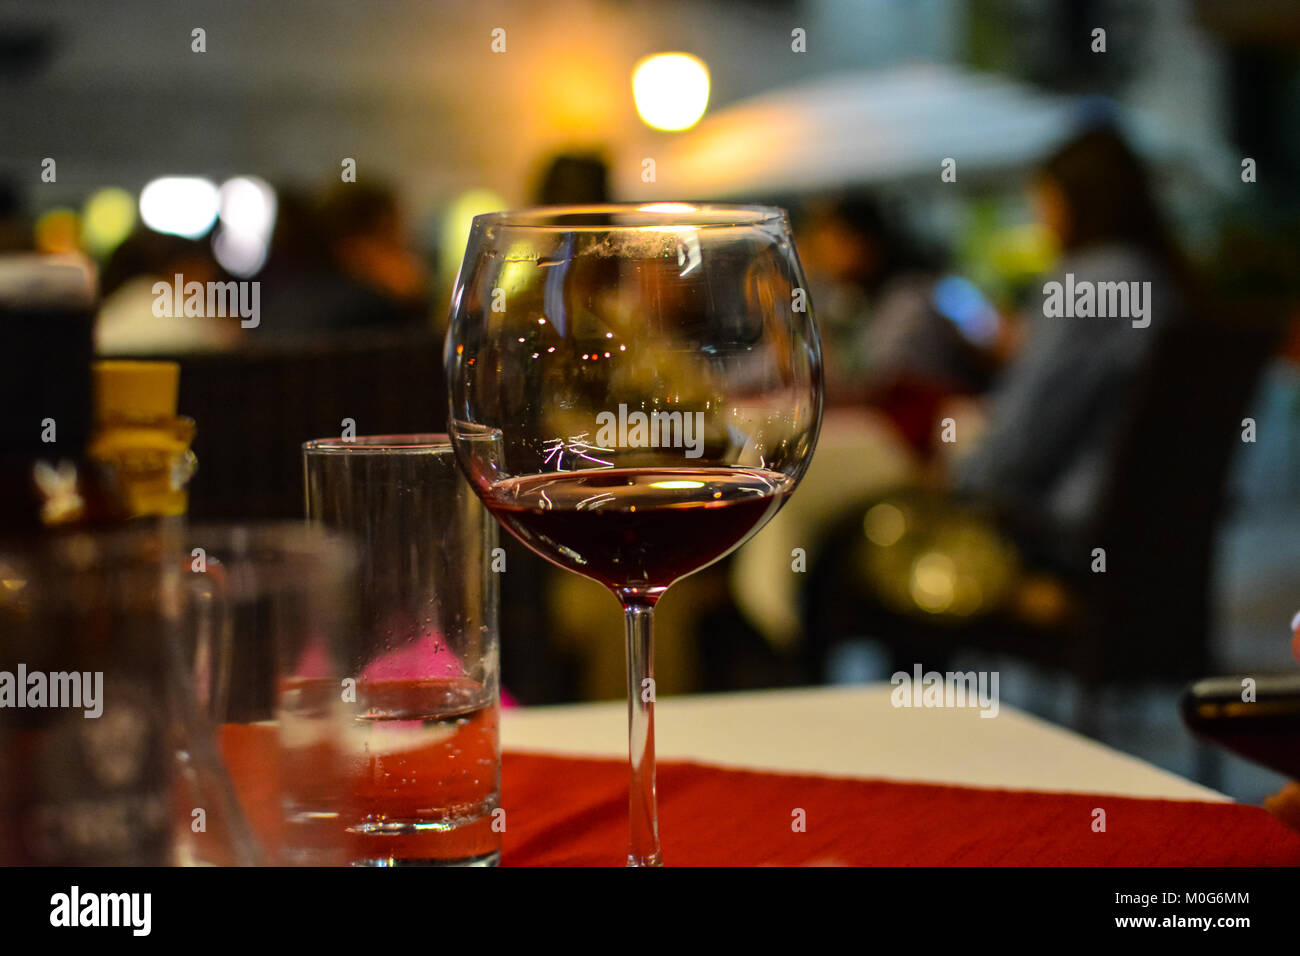 A half empty glass of wine sits on the table of a sidewalk cafe in Split Croatia - Stock Image